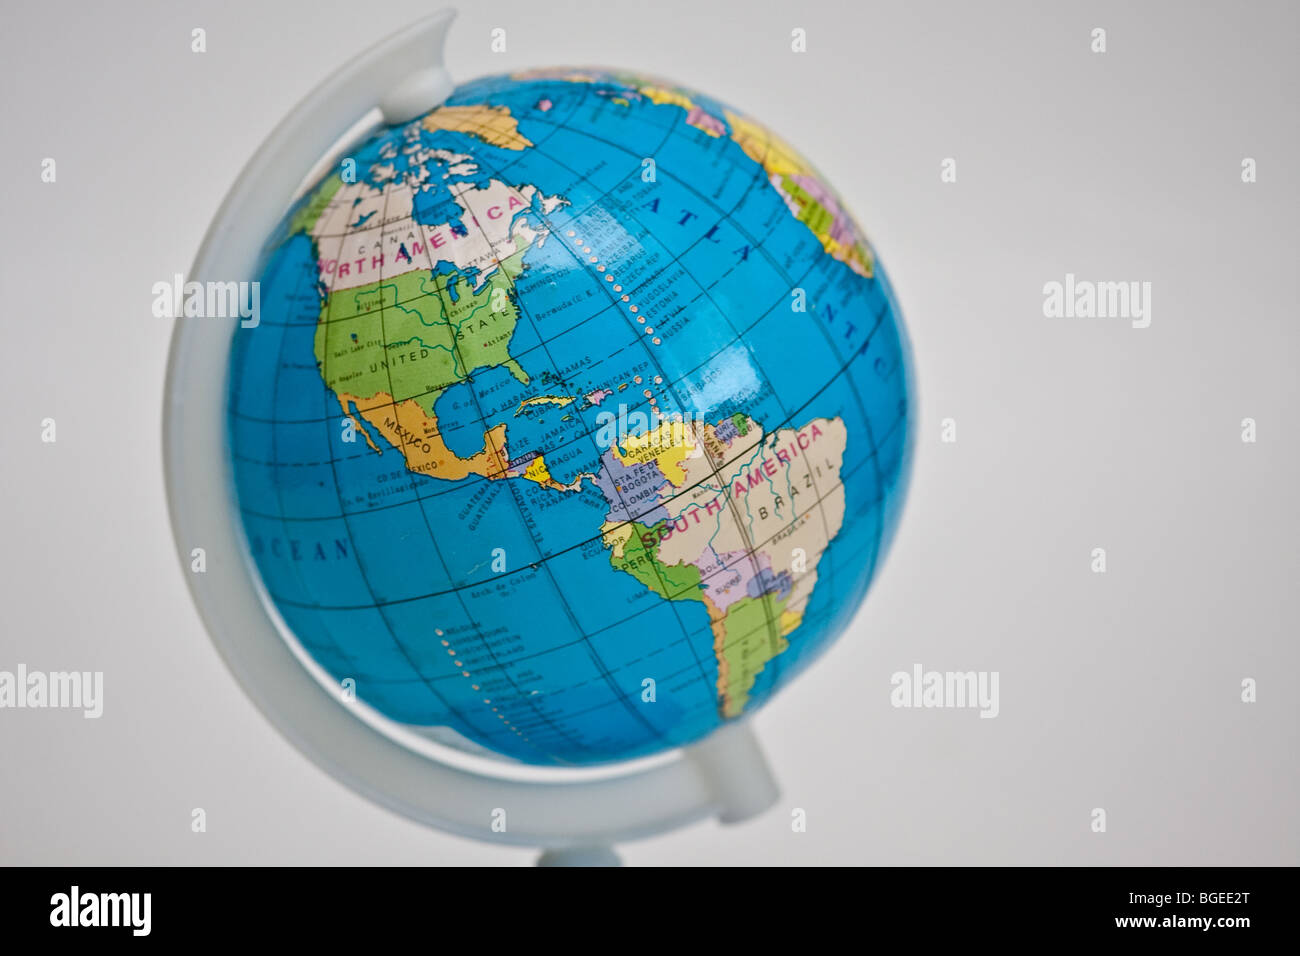 Globe showing the north and south america including canada united globe showing the north and south america including canada united states mexico brazil and other latin america countries gumiabroncs Images